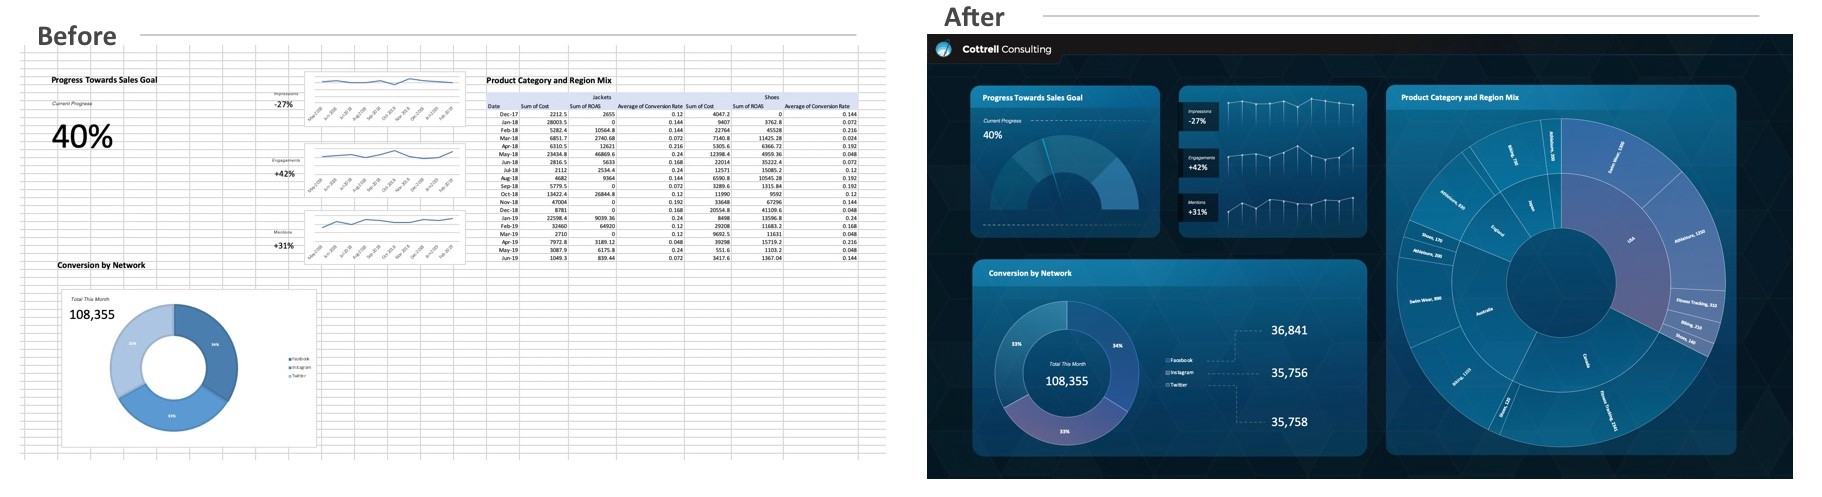 A before and after image of a normal excel table followed by a colorful and more interesting dashboard showing the same data.